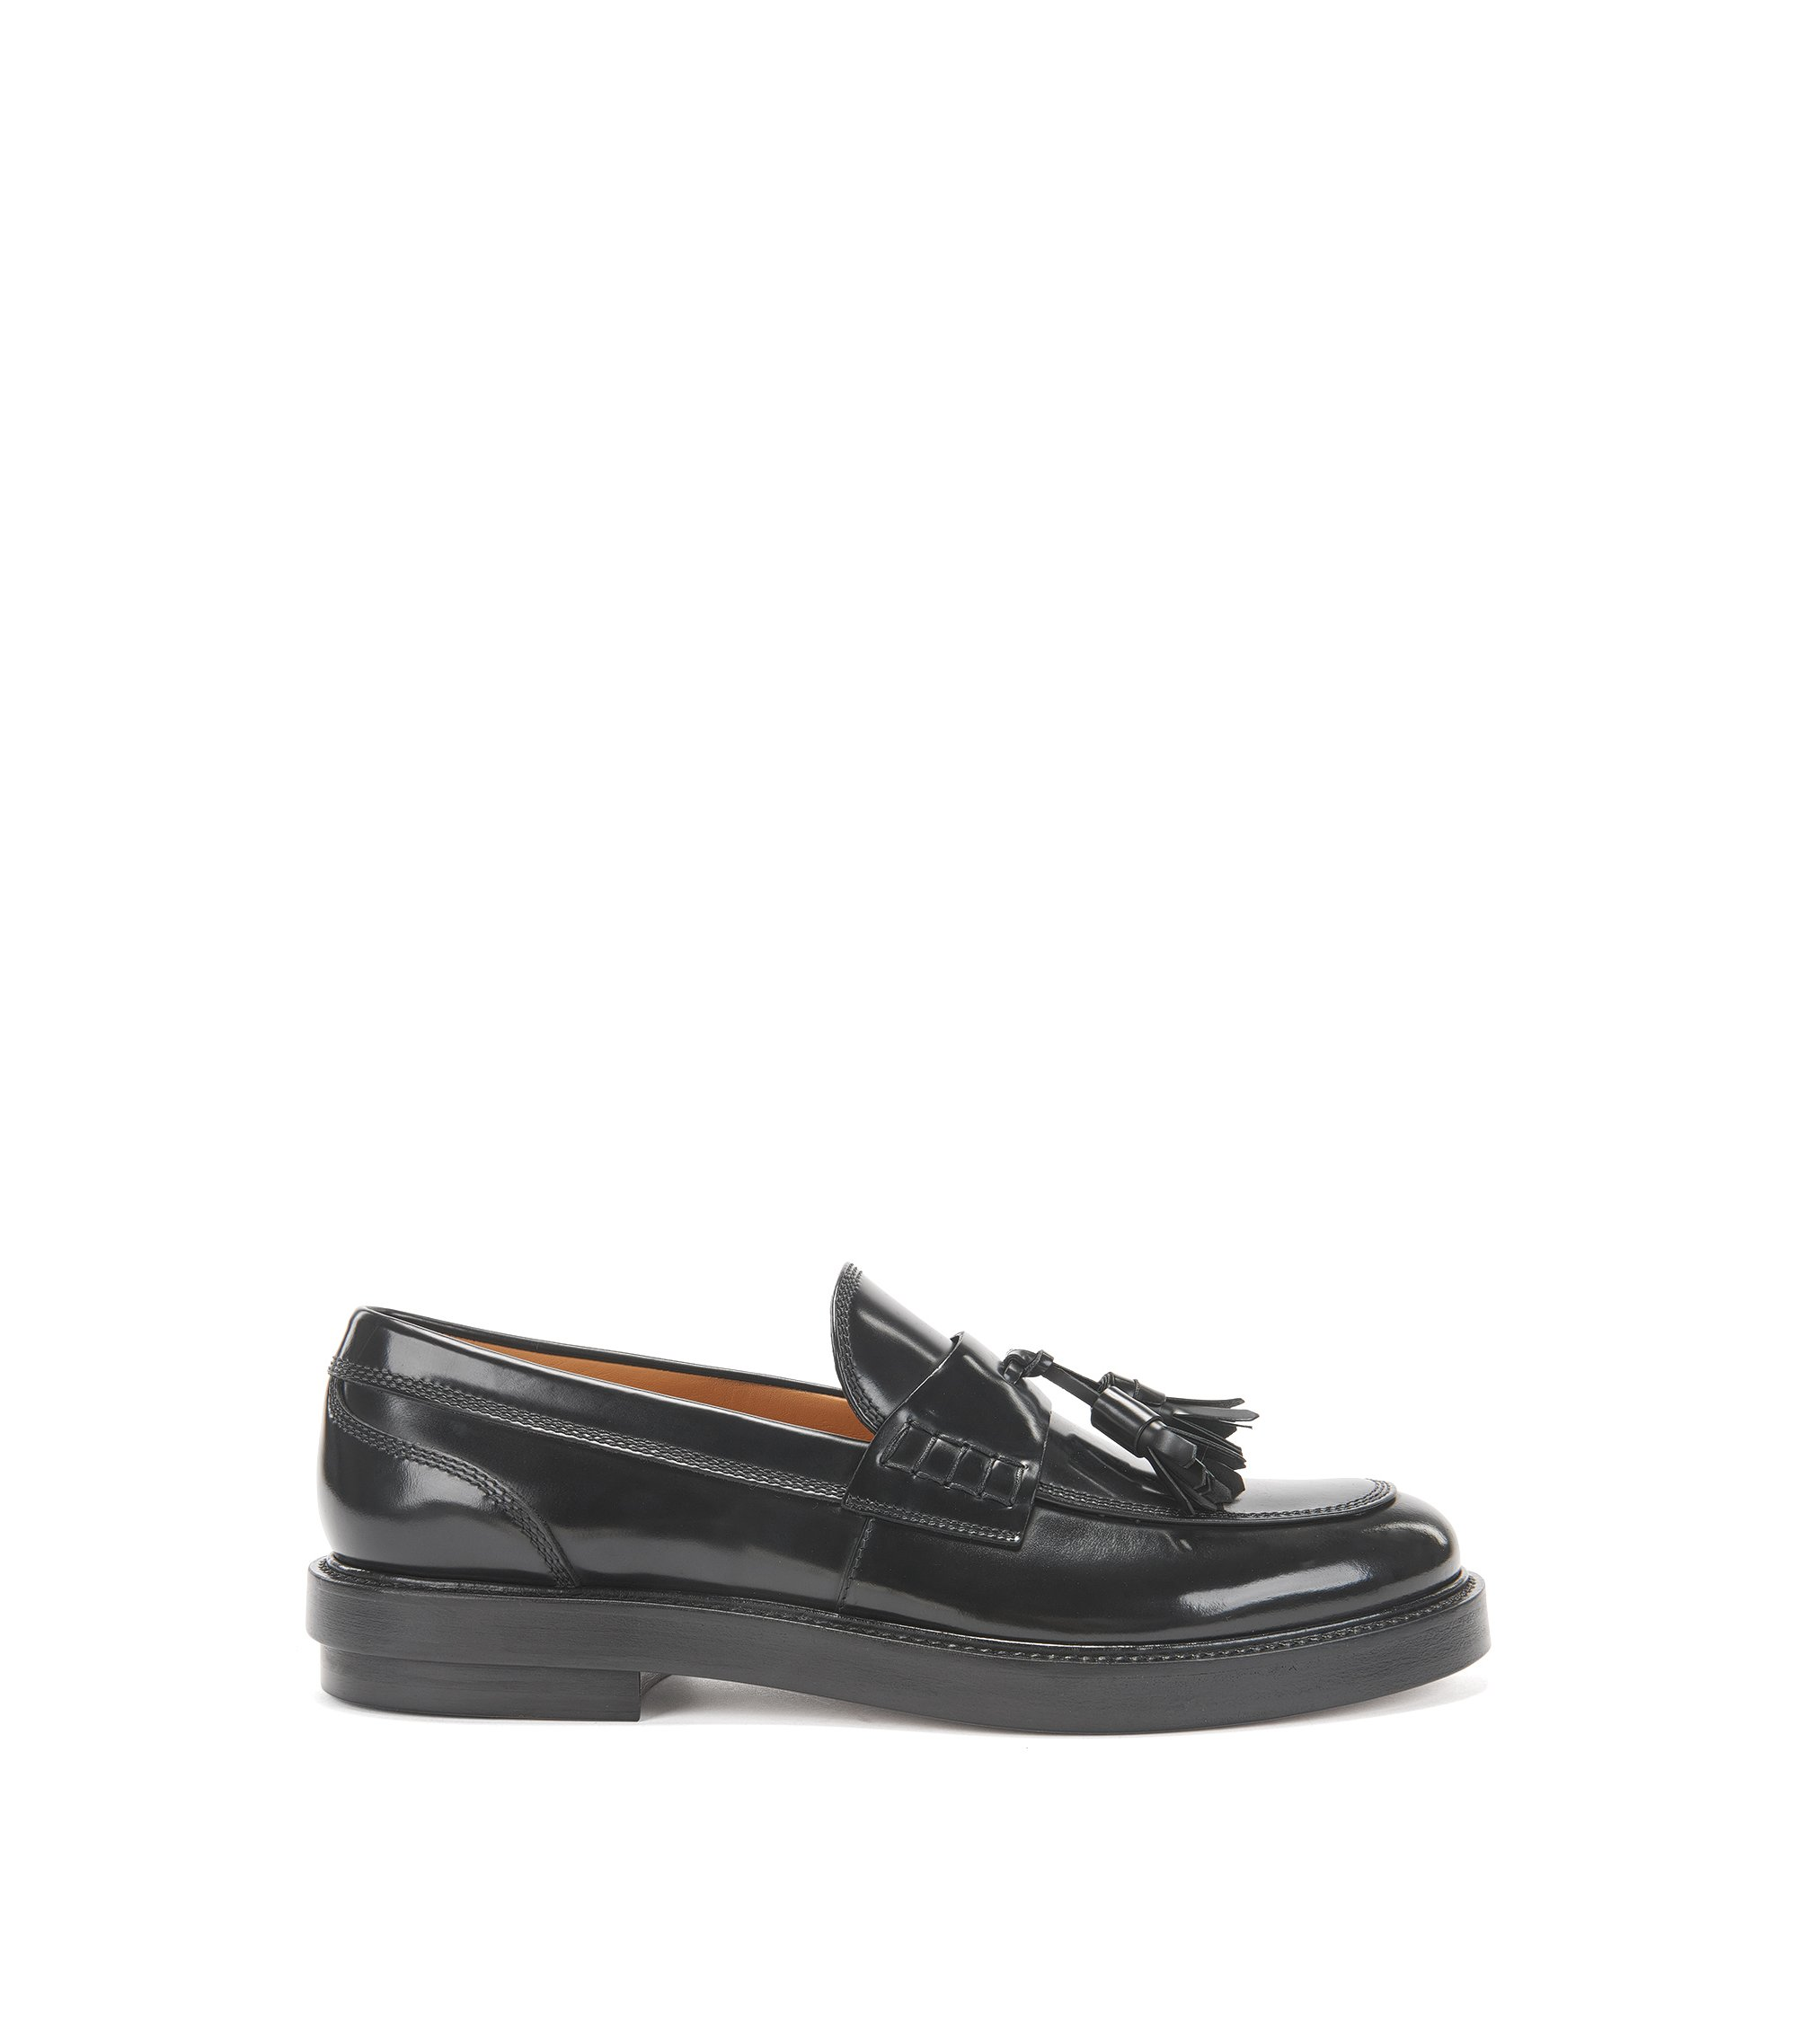 Tassel loafers in brush-off leather, Black